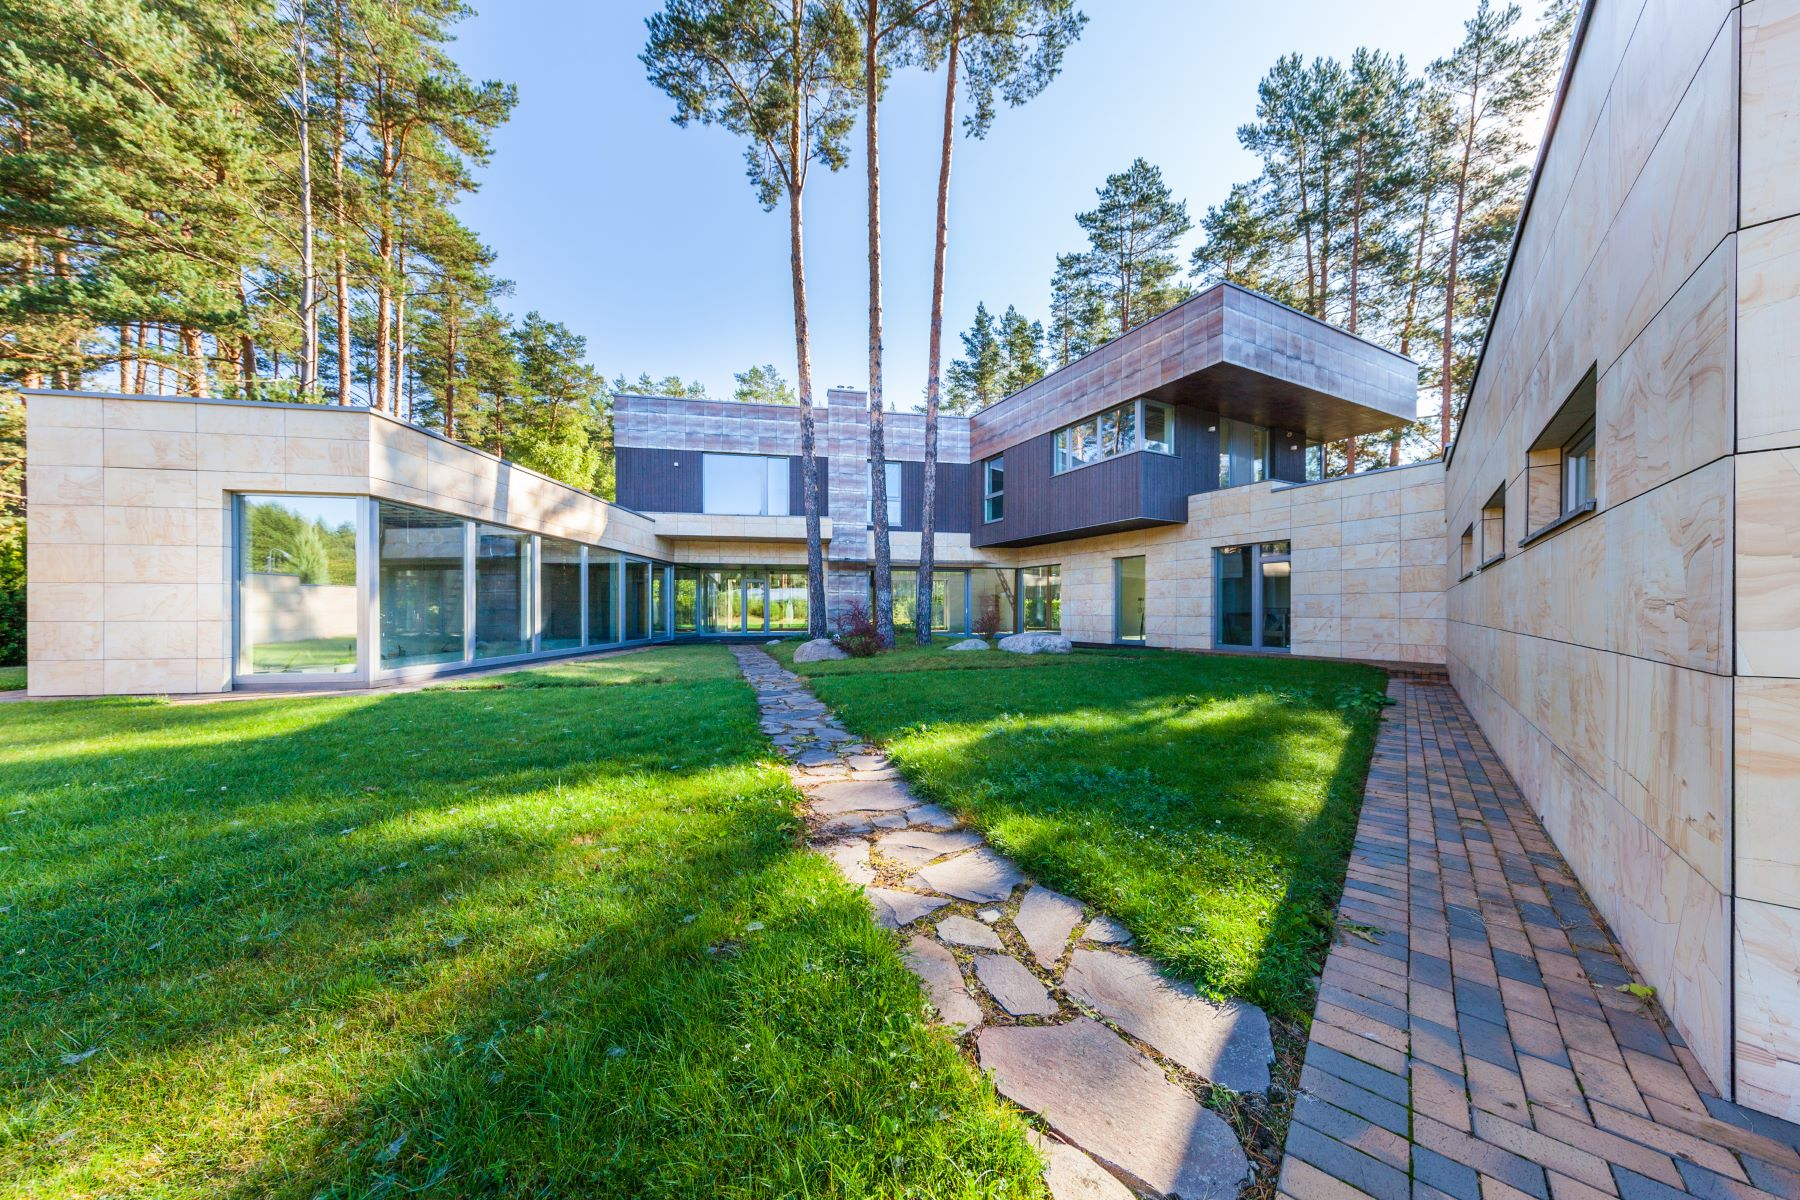 Single Family Home for Sale at House of Stylish Architecture Surrounded by the Natural Vilnius, Vilnius County, Lithuania